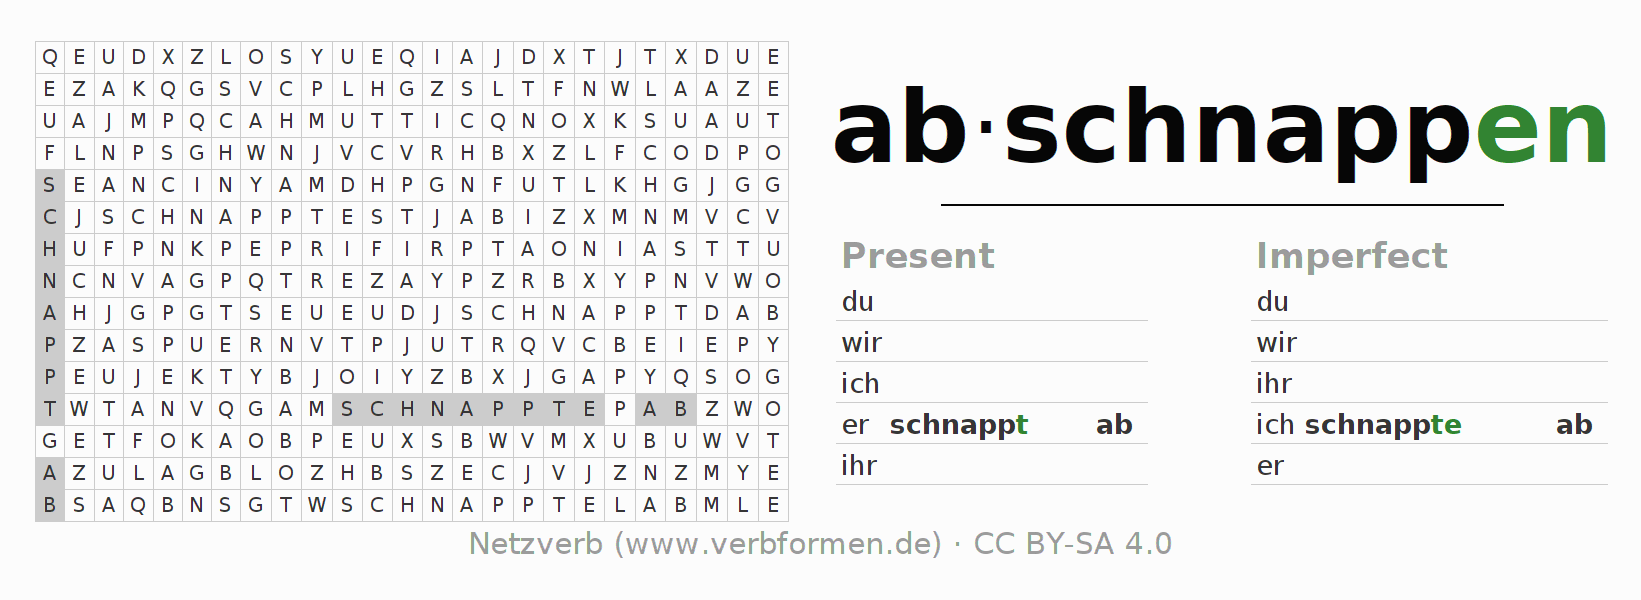 Word search puzzle for the conjugation of the verb abschnappen (ist)